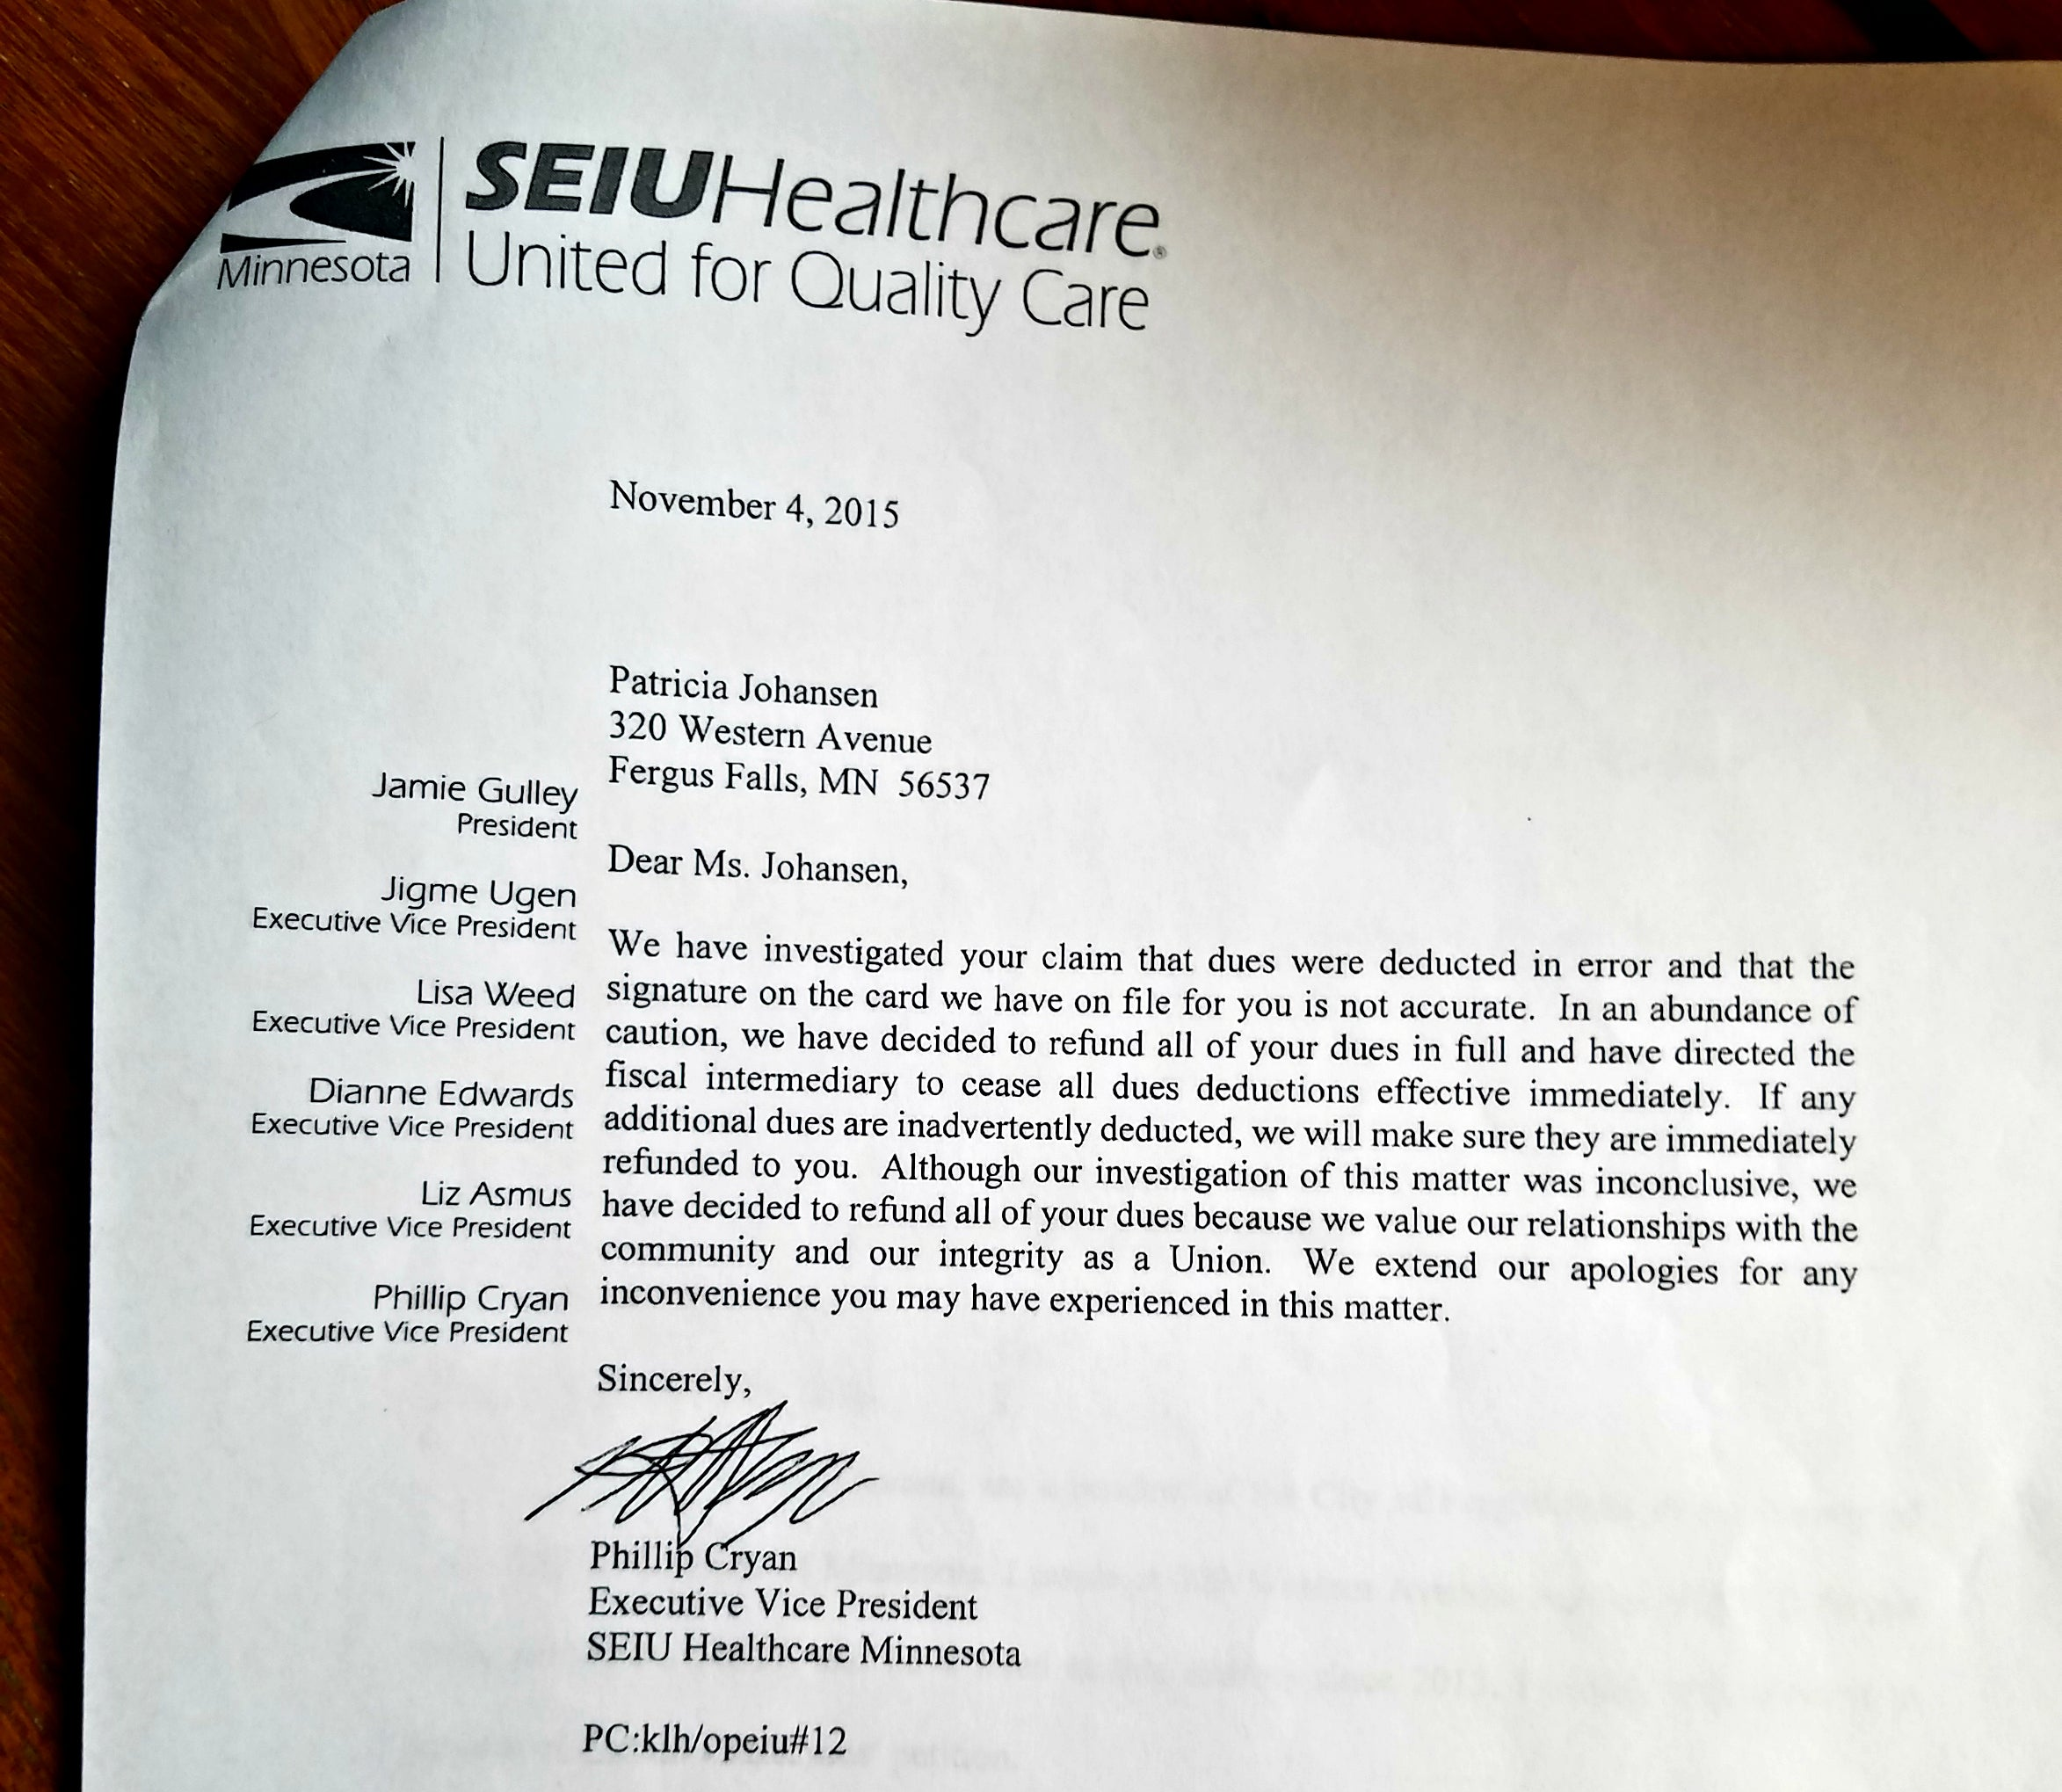 The letter from SEIU official Phillip Cryan to Patricia Johansen. (Photo: Kevin Mooney/The Daily Signal)